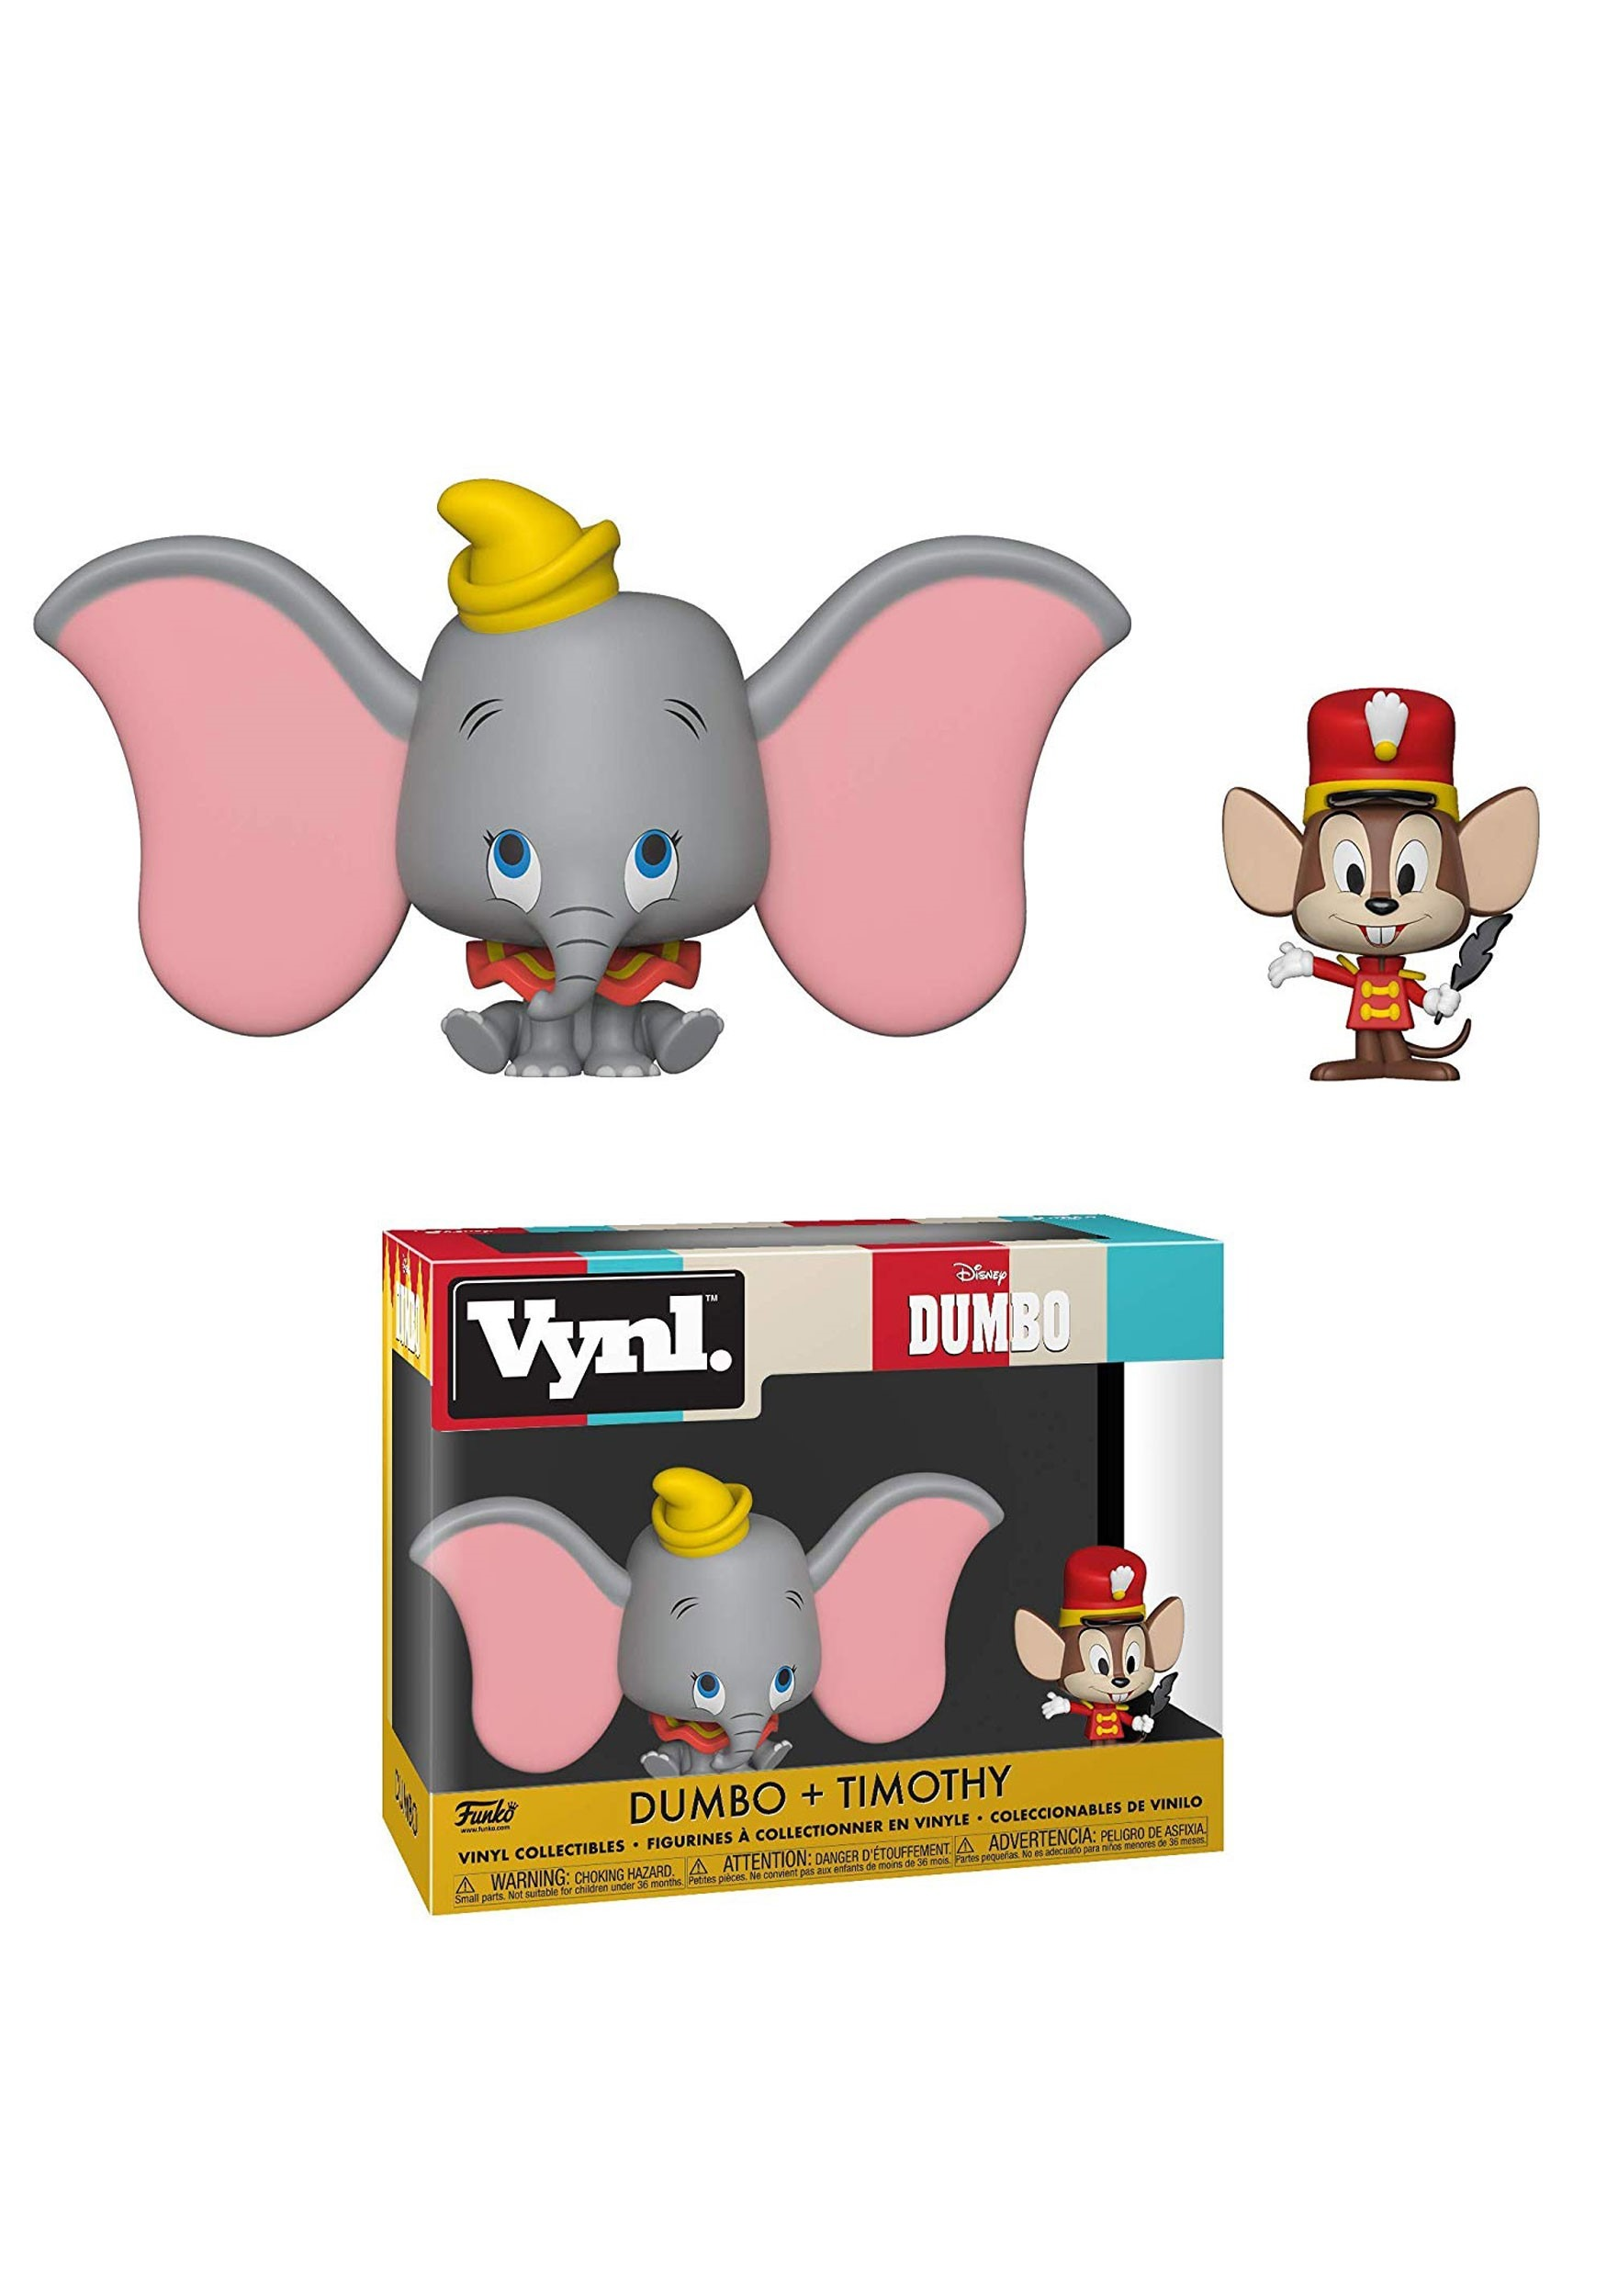 Pleasing Vynl Dumbo Dumbo Timothy Vinyl Figures Caraccident5 Cool Chair Designs And Ideas Caraccident5Info